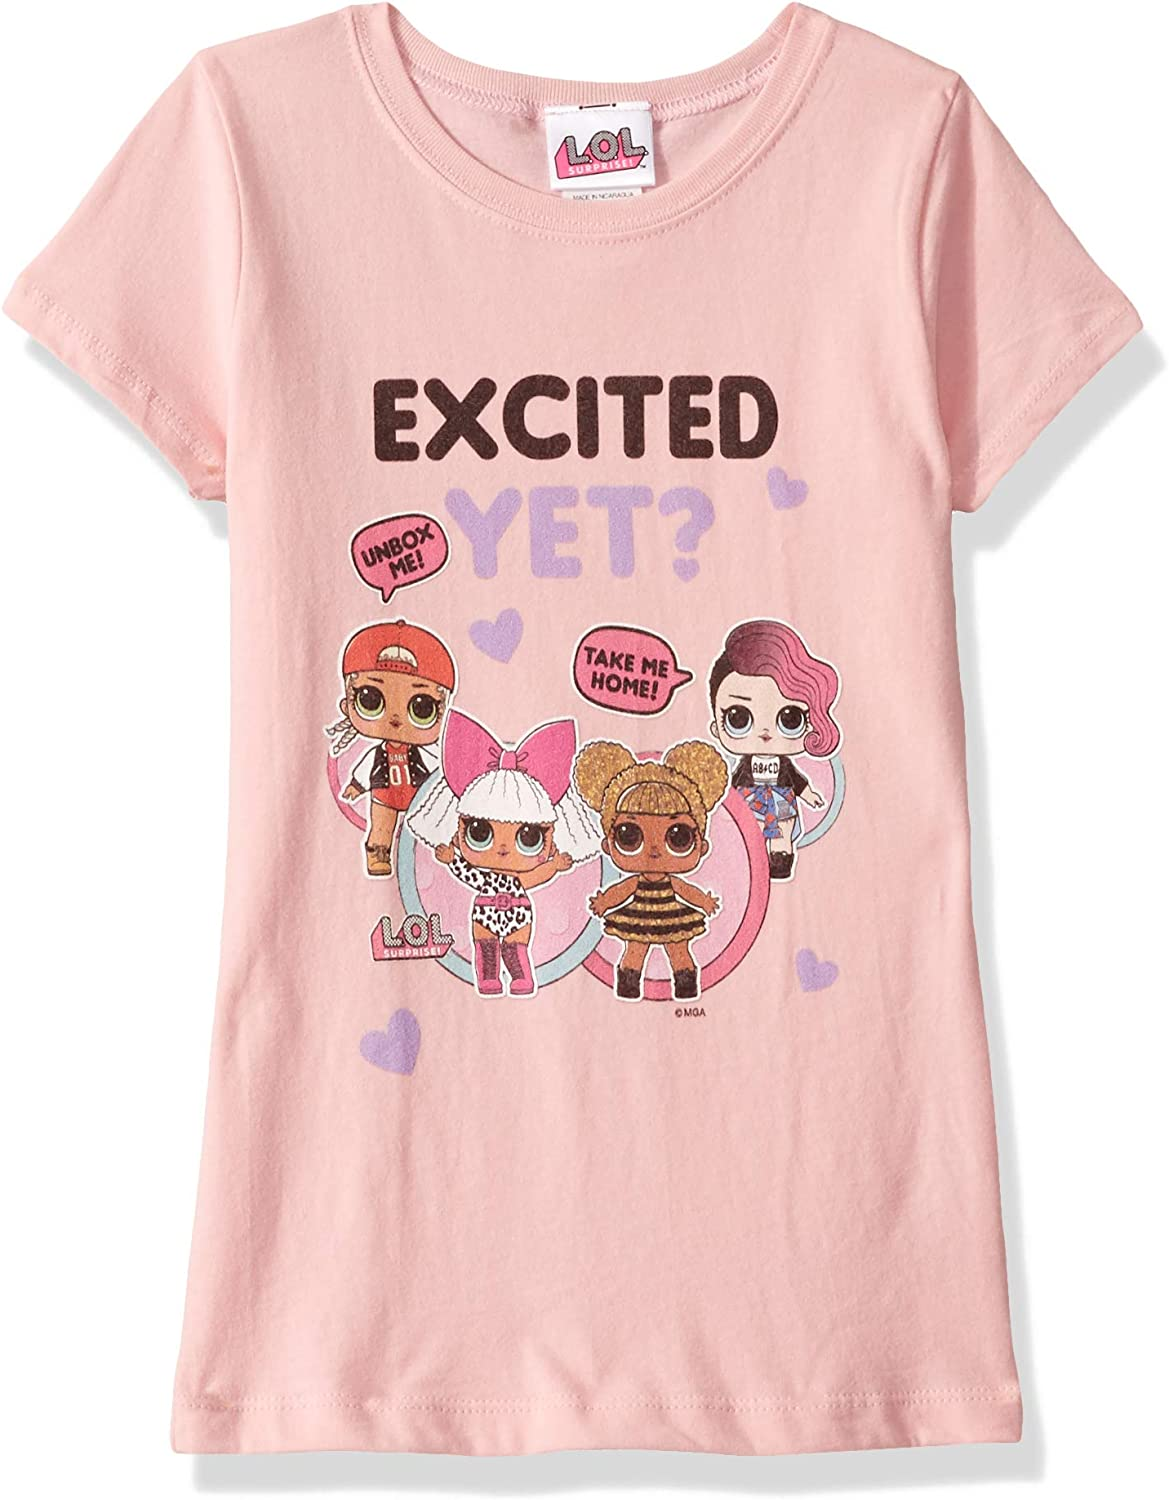 pink glitter /& animal print shirt LOL Surprise doll accessories outfits clothes